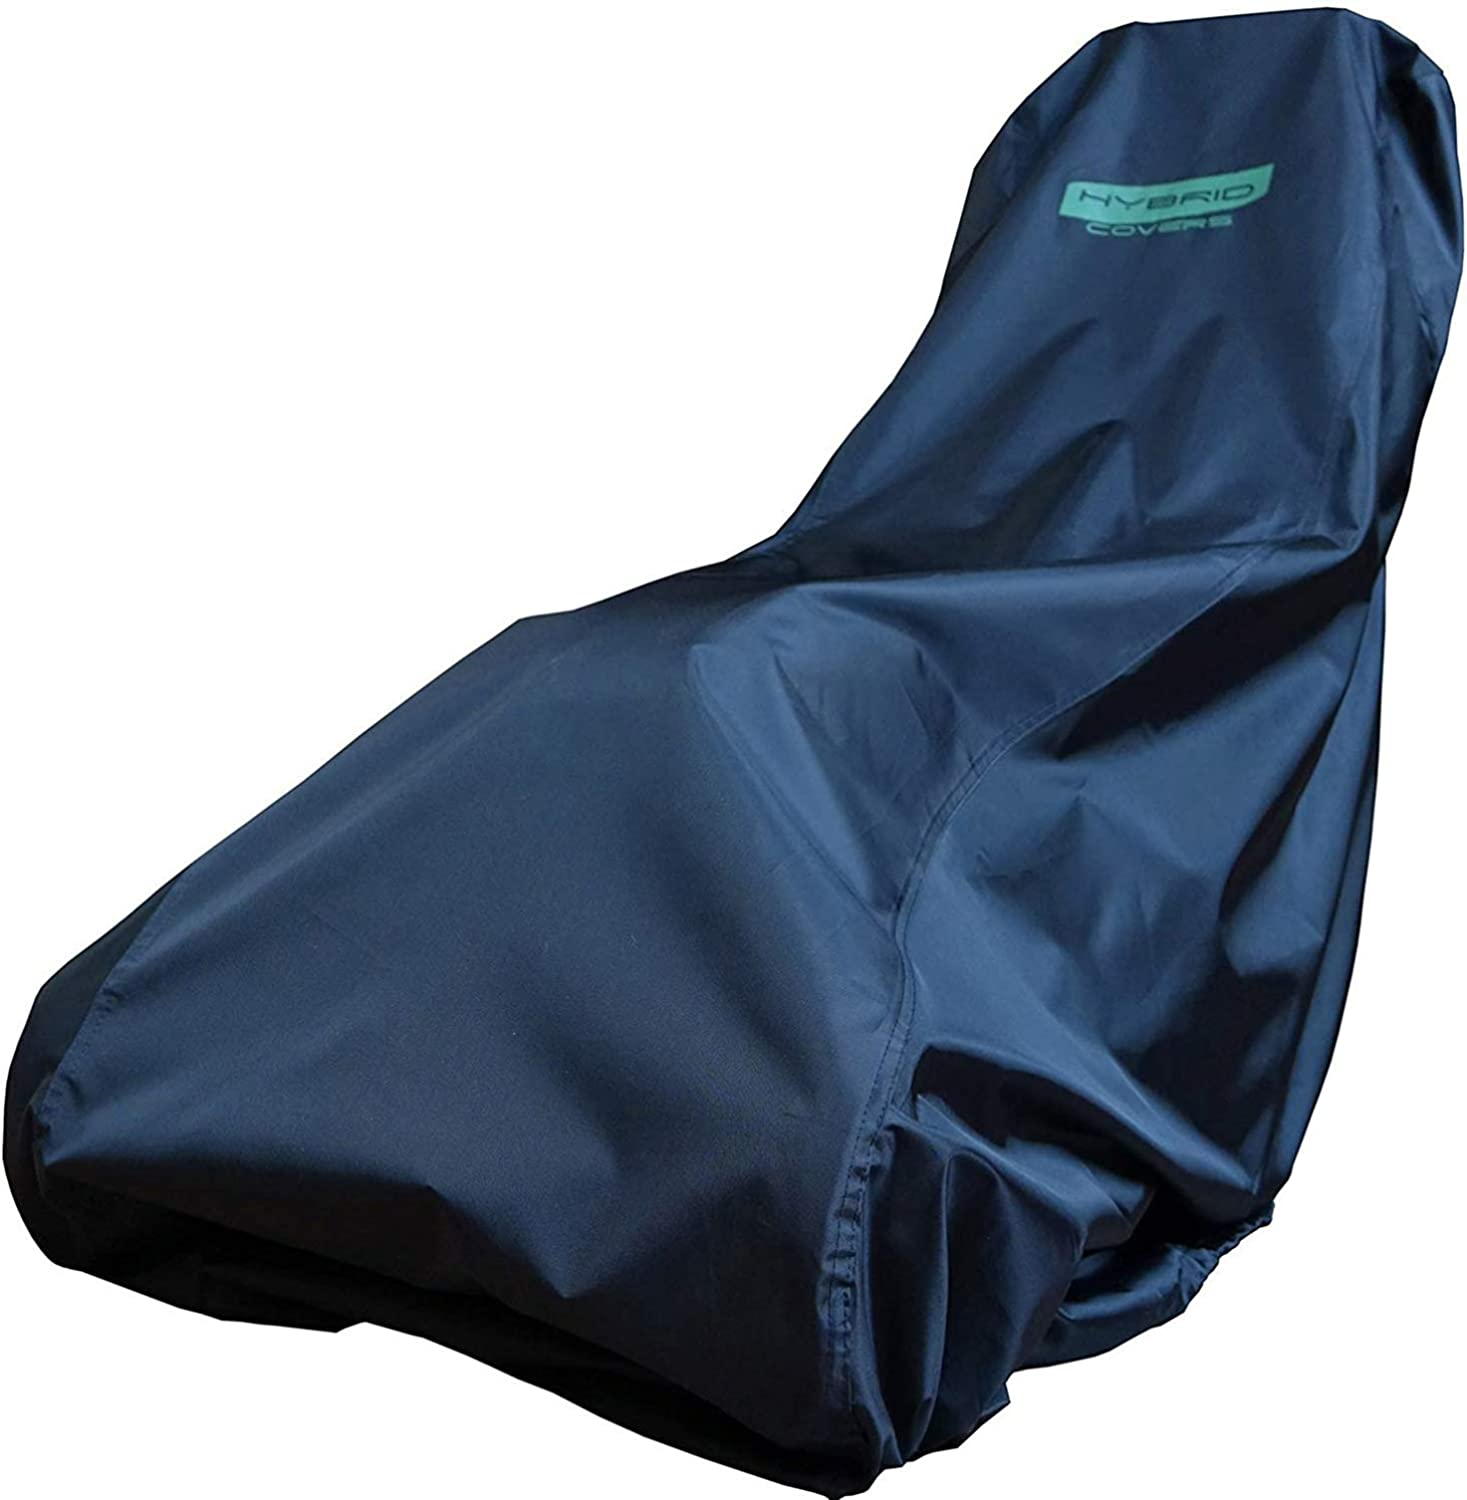 Hybrid Covers Lawn Mower Cover